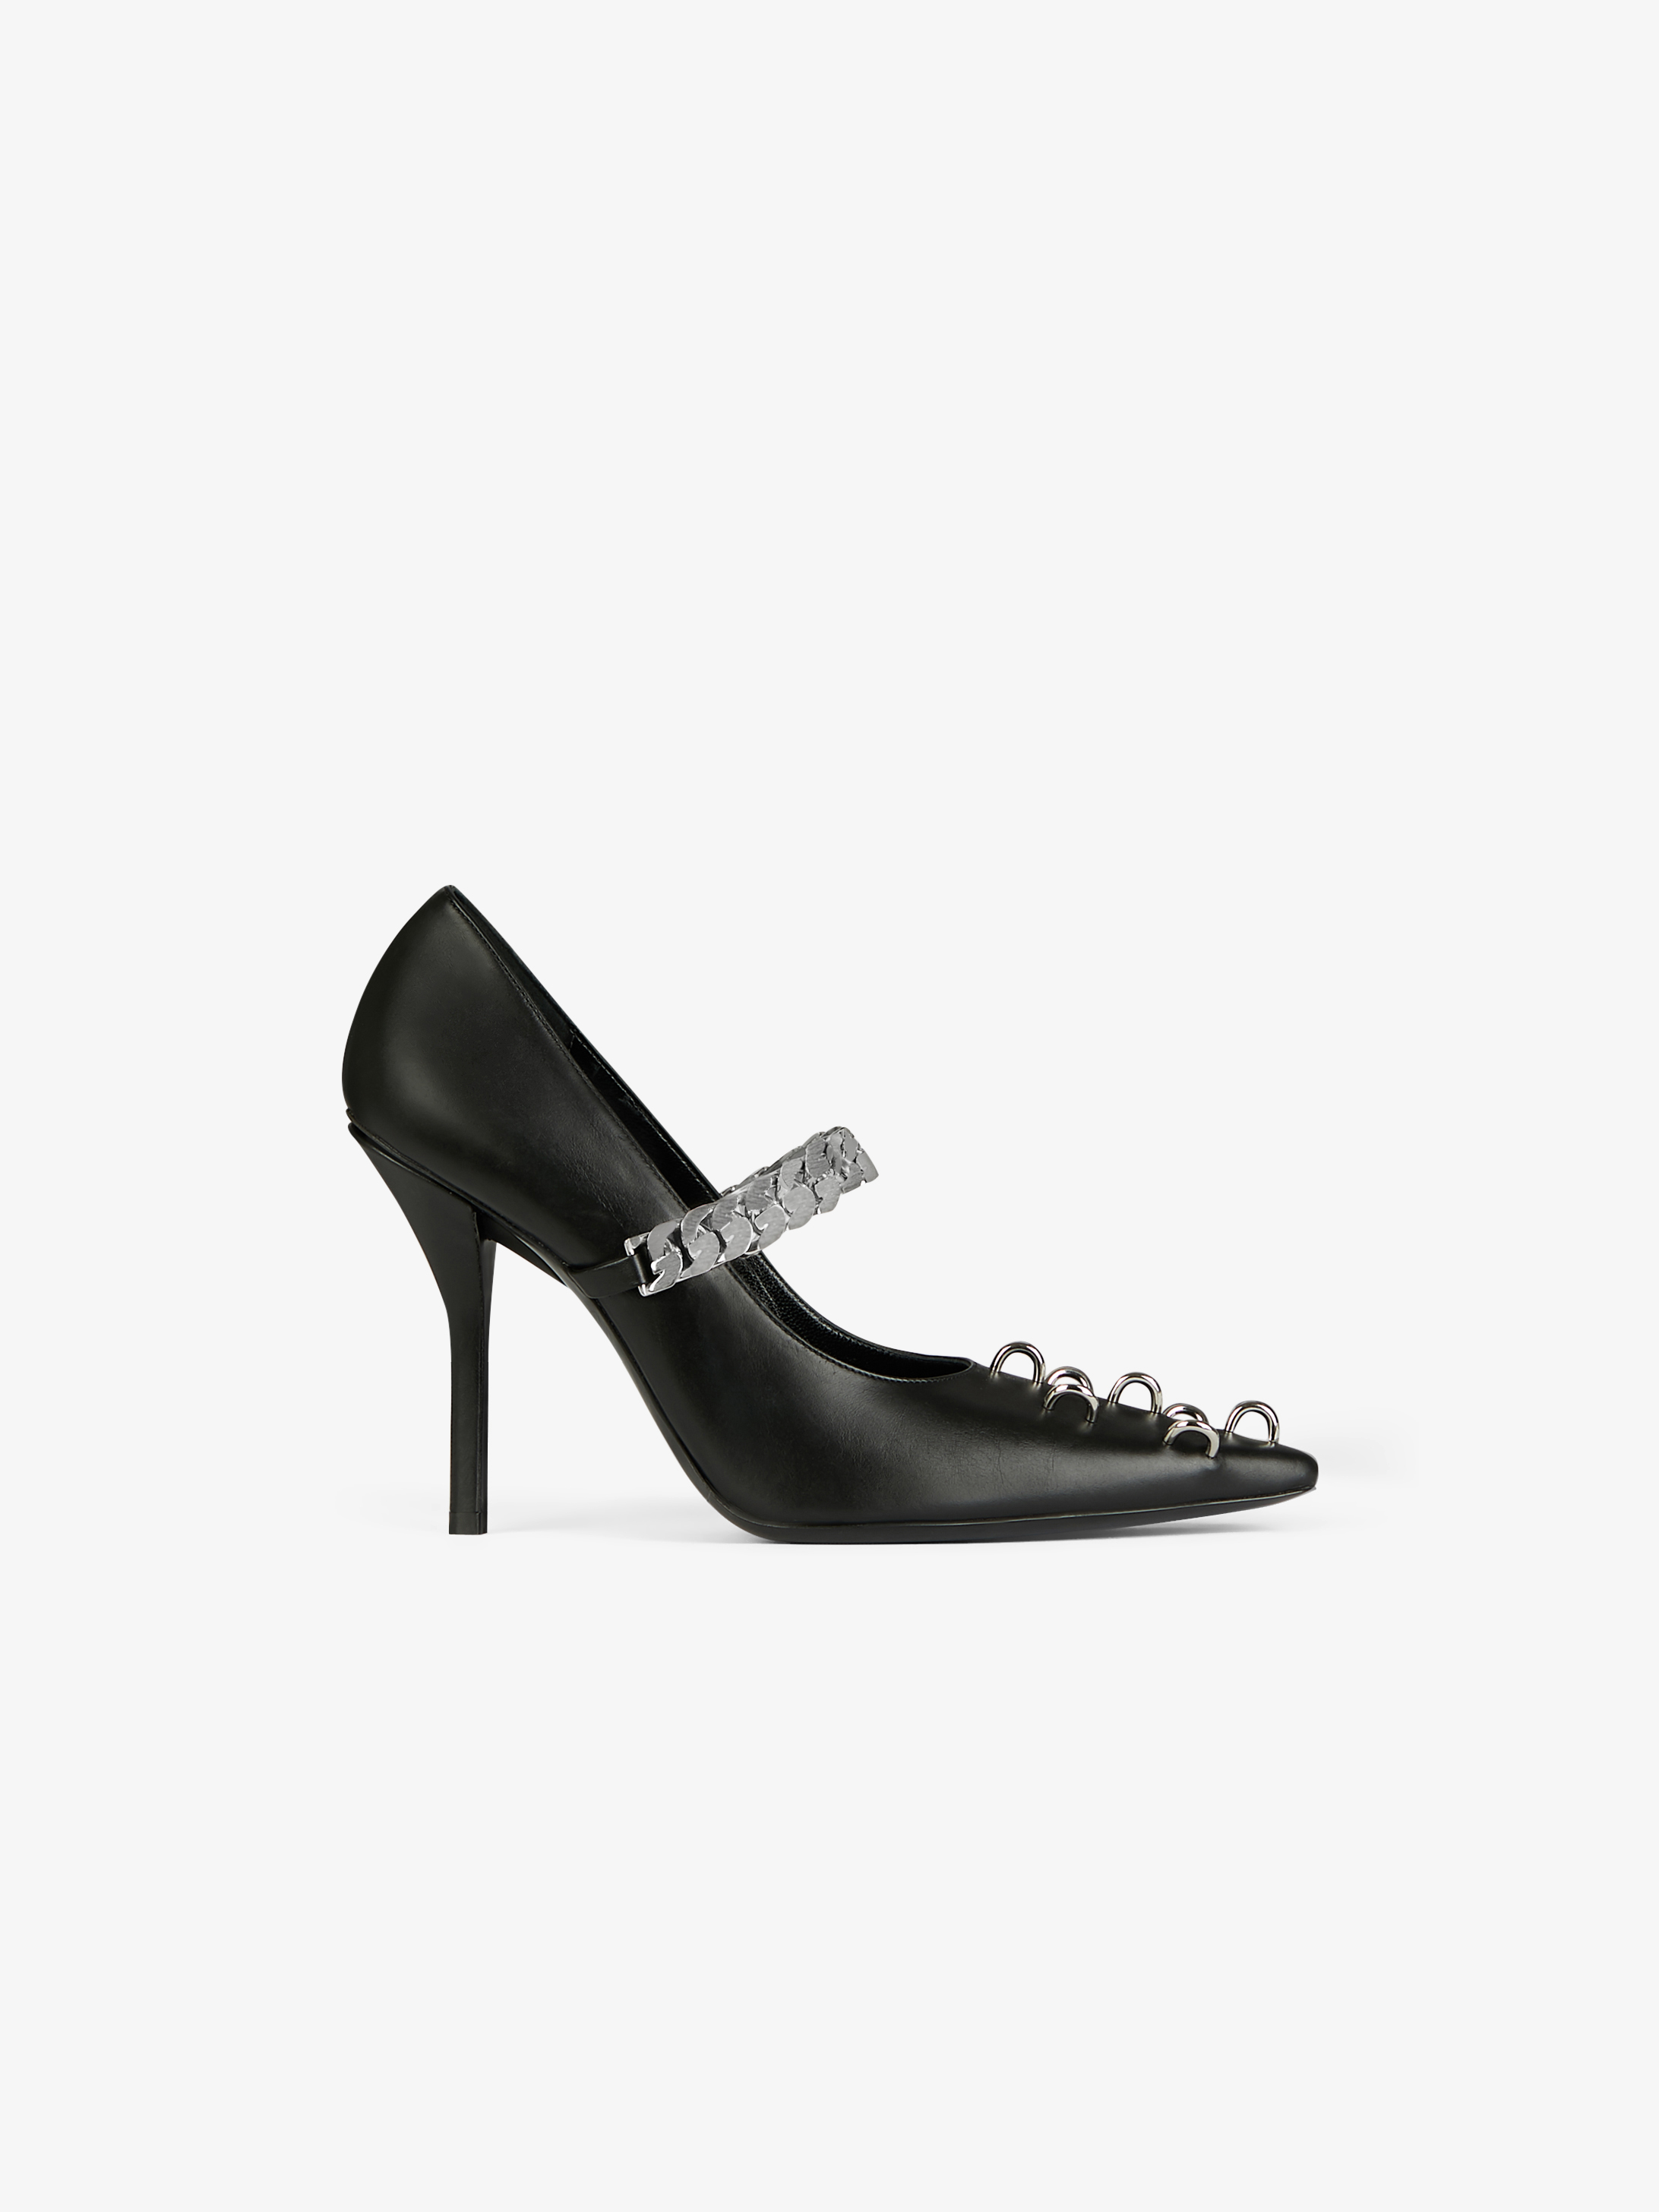 Pumps in leather with metallic details